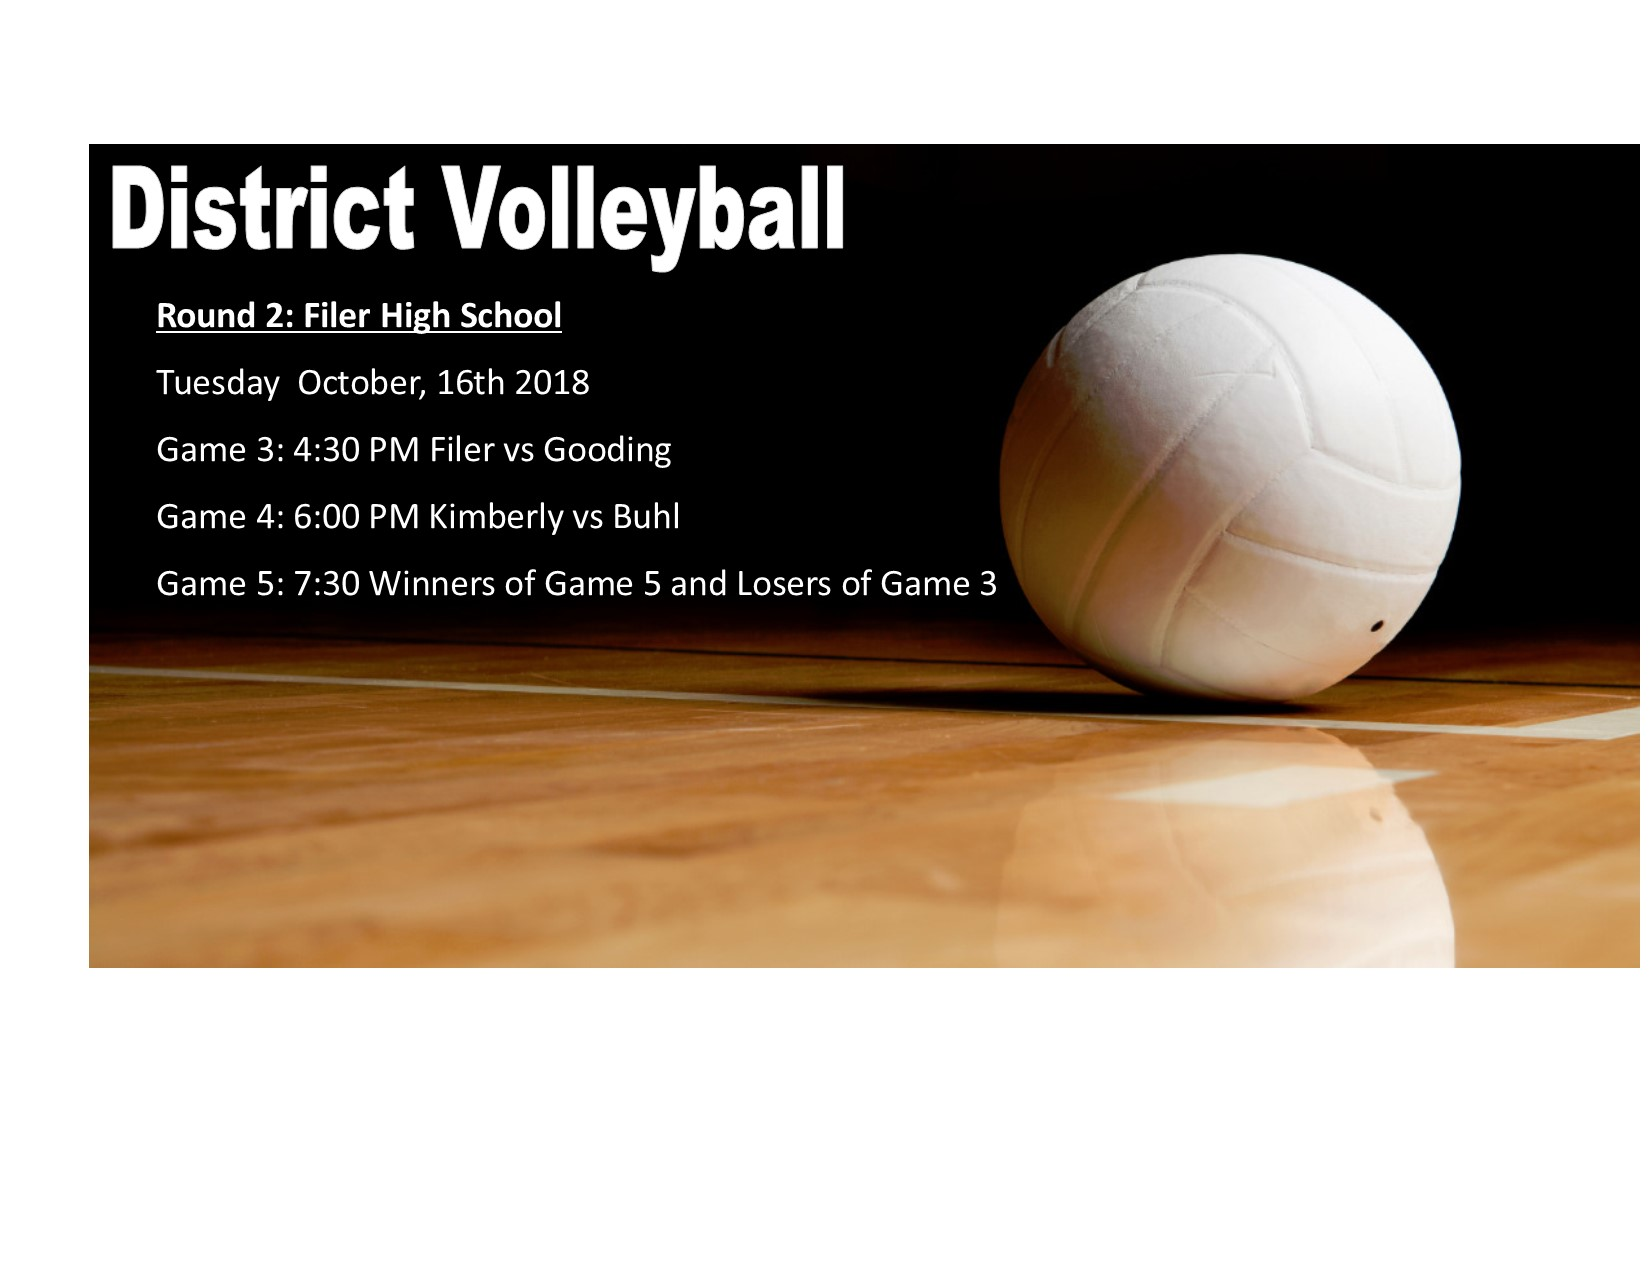 SCIC District Volleyball